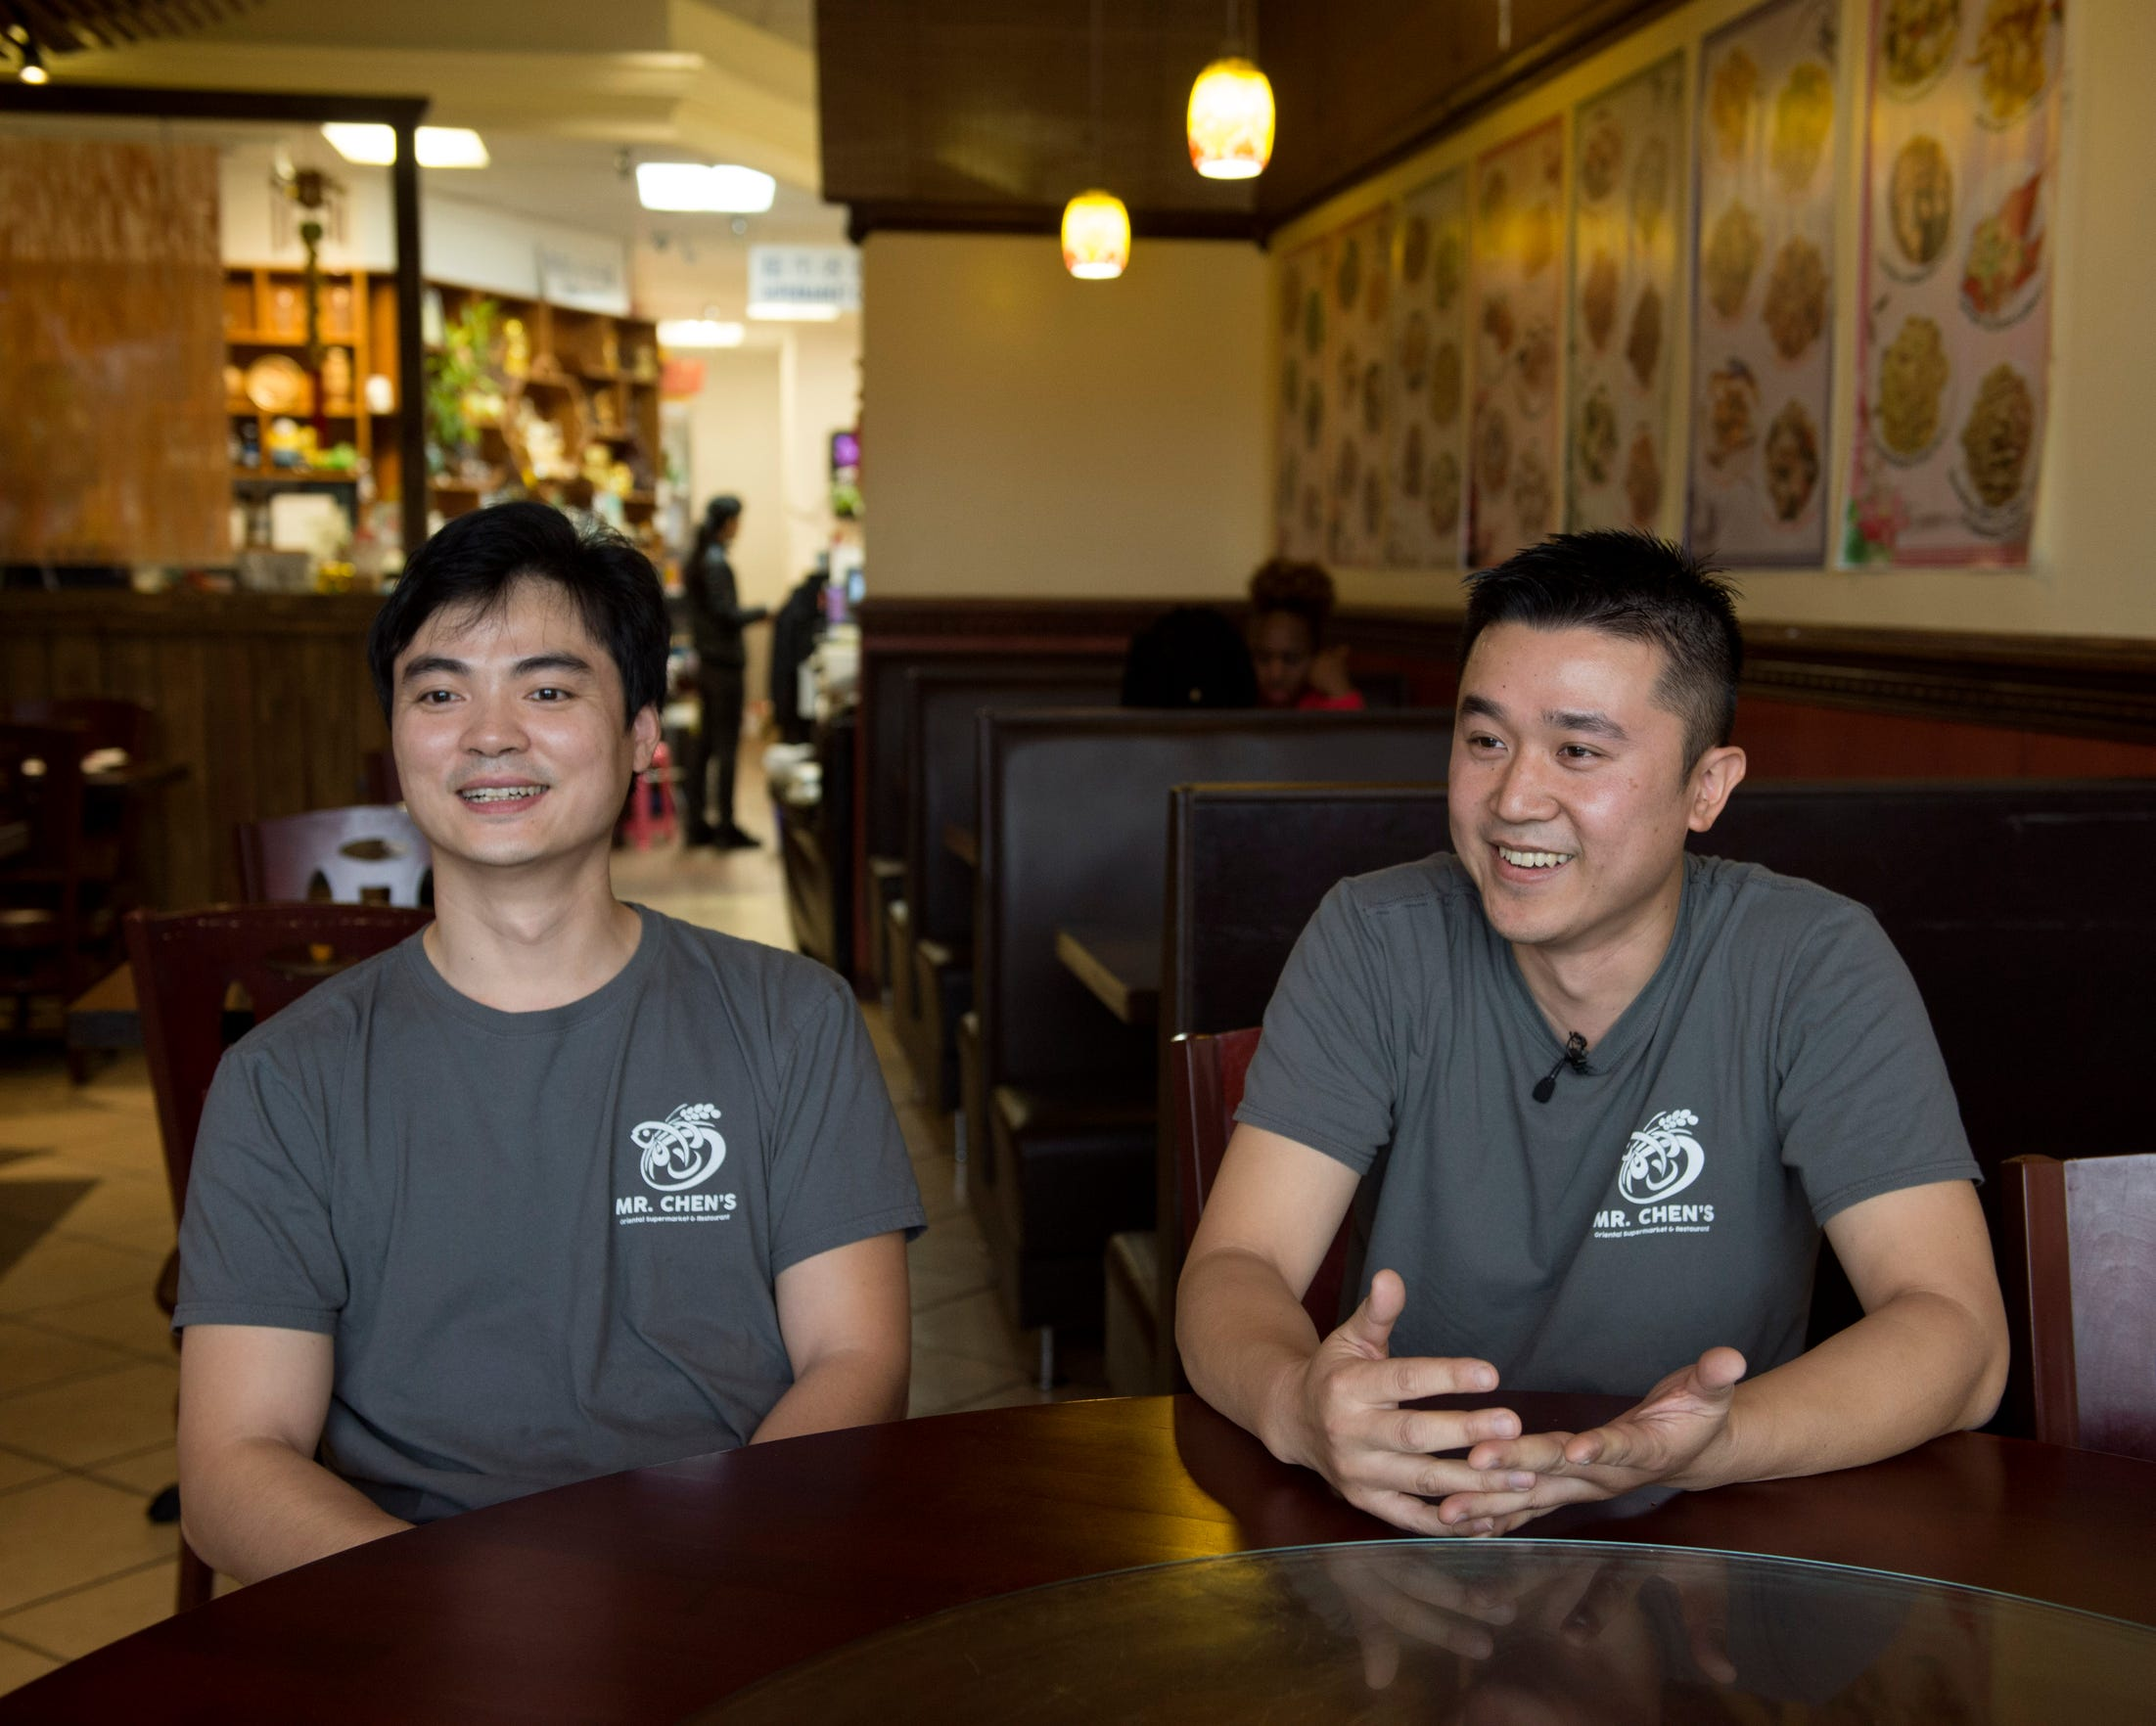 Mr Chen's owners Fisher Yu (left) and Jason Lin (right) sit in the dining area of their restaurant and grocery store in Jackson. Monday, Jan. 7, 2019.